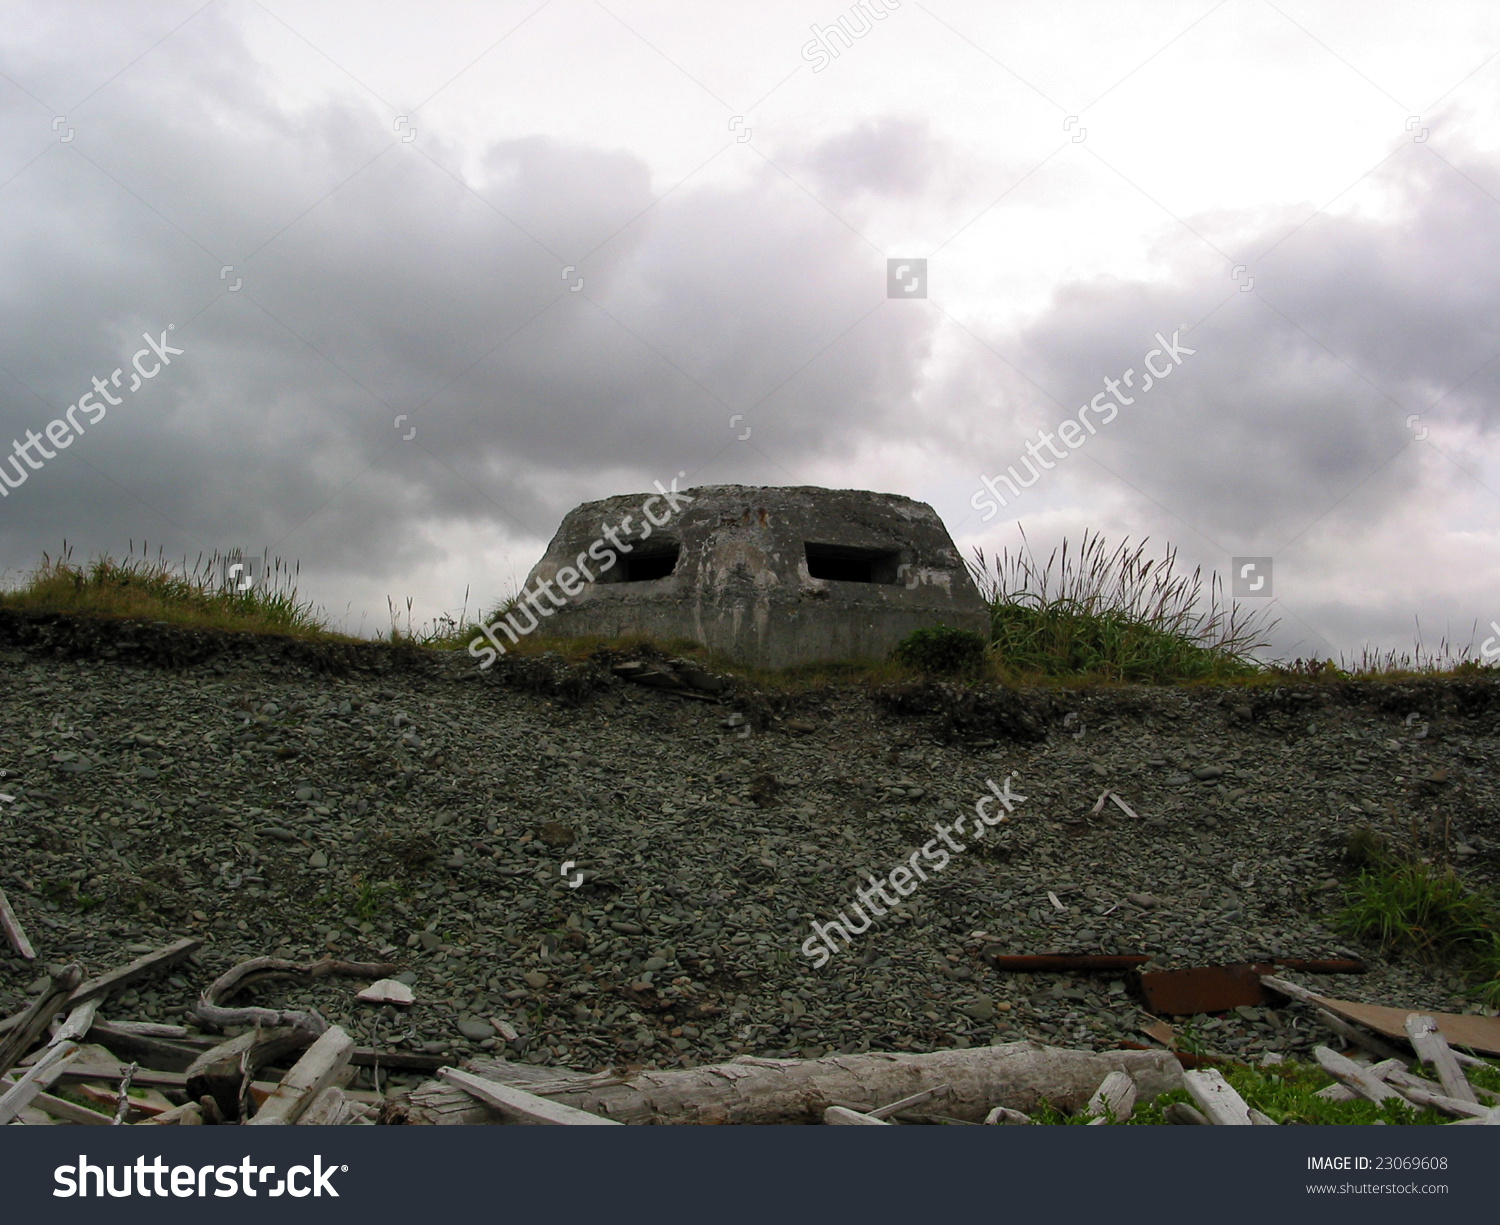 Ww2 Relics Dutch Harbor Alaska Pill Stock Photo 23069608.